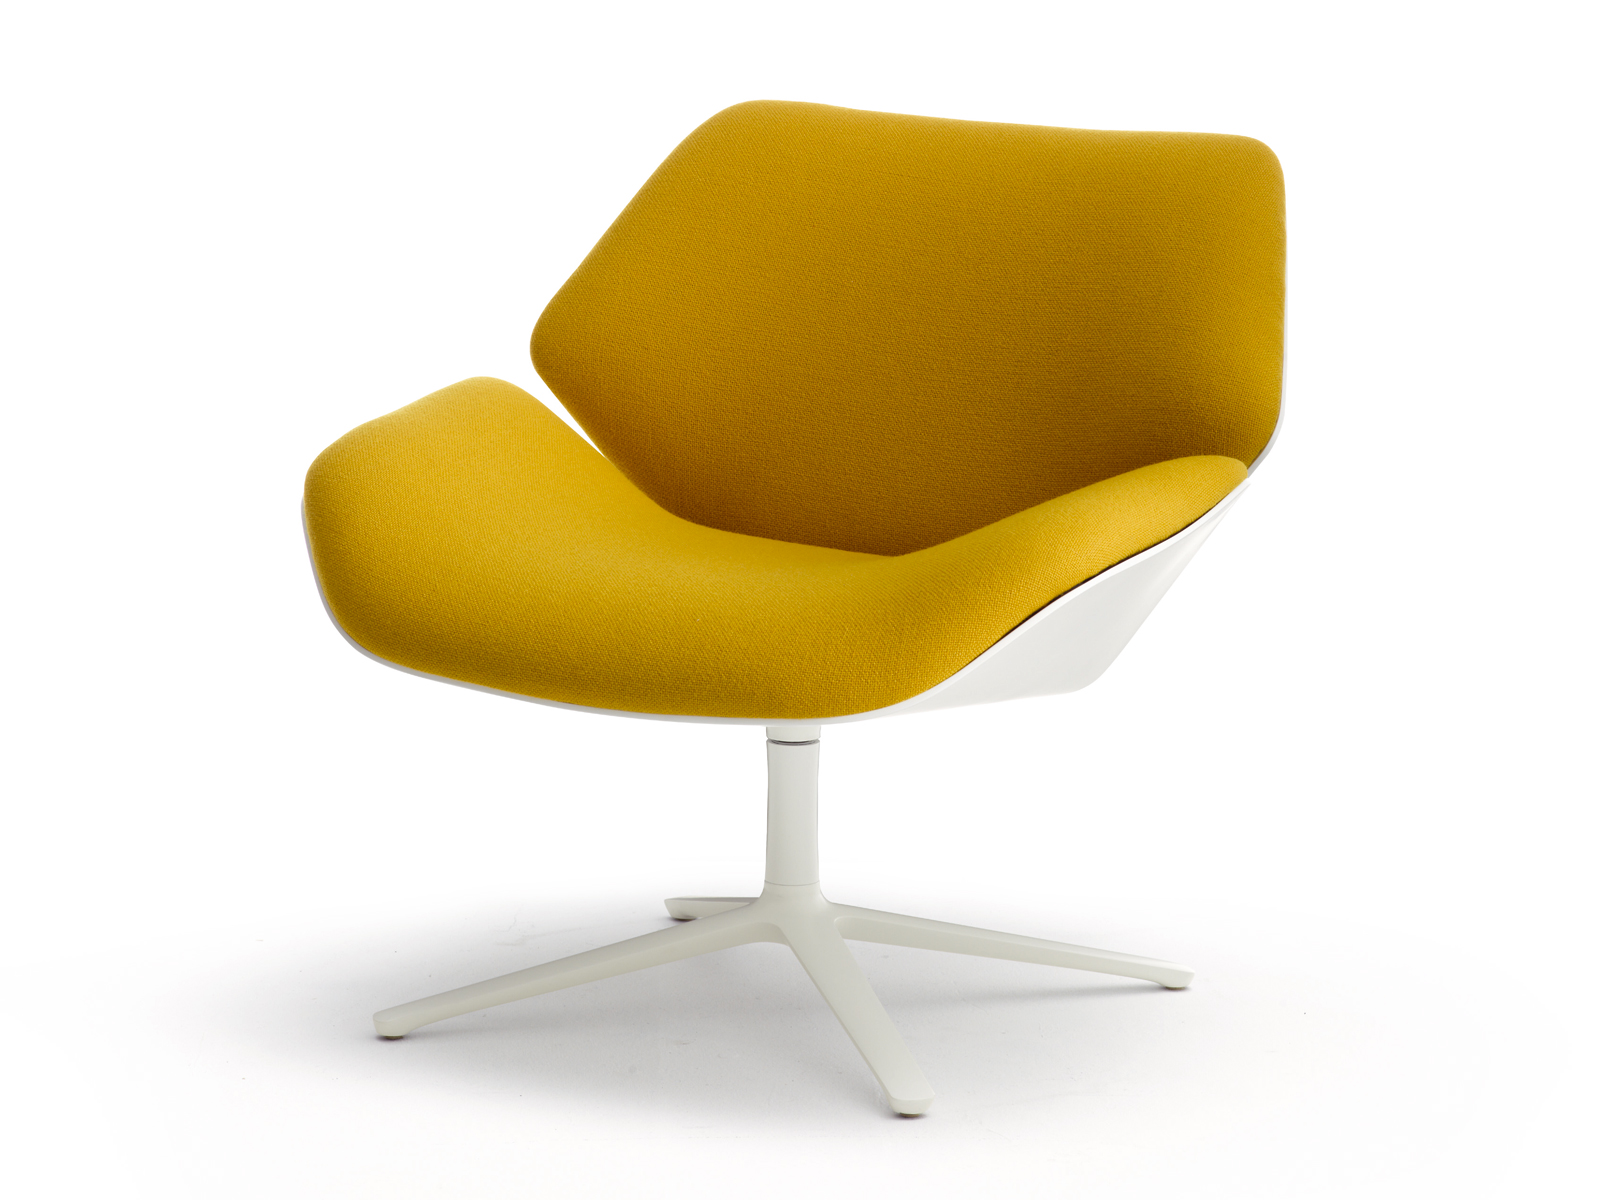 fabric armchair with footstool cordia lounge by cor design jehs laub